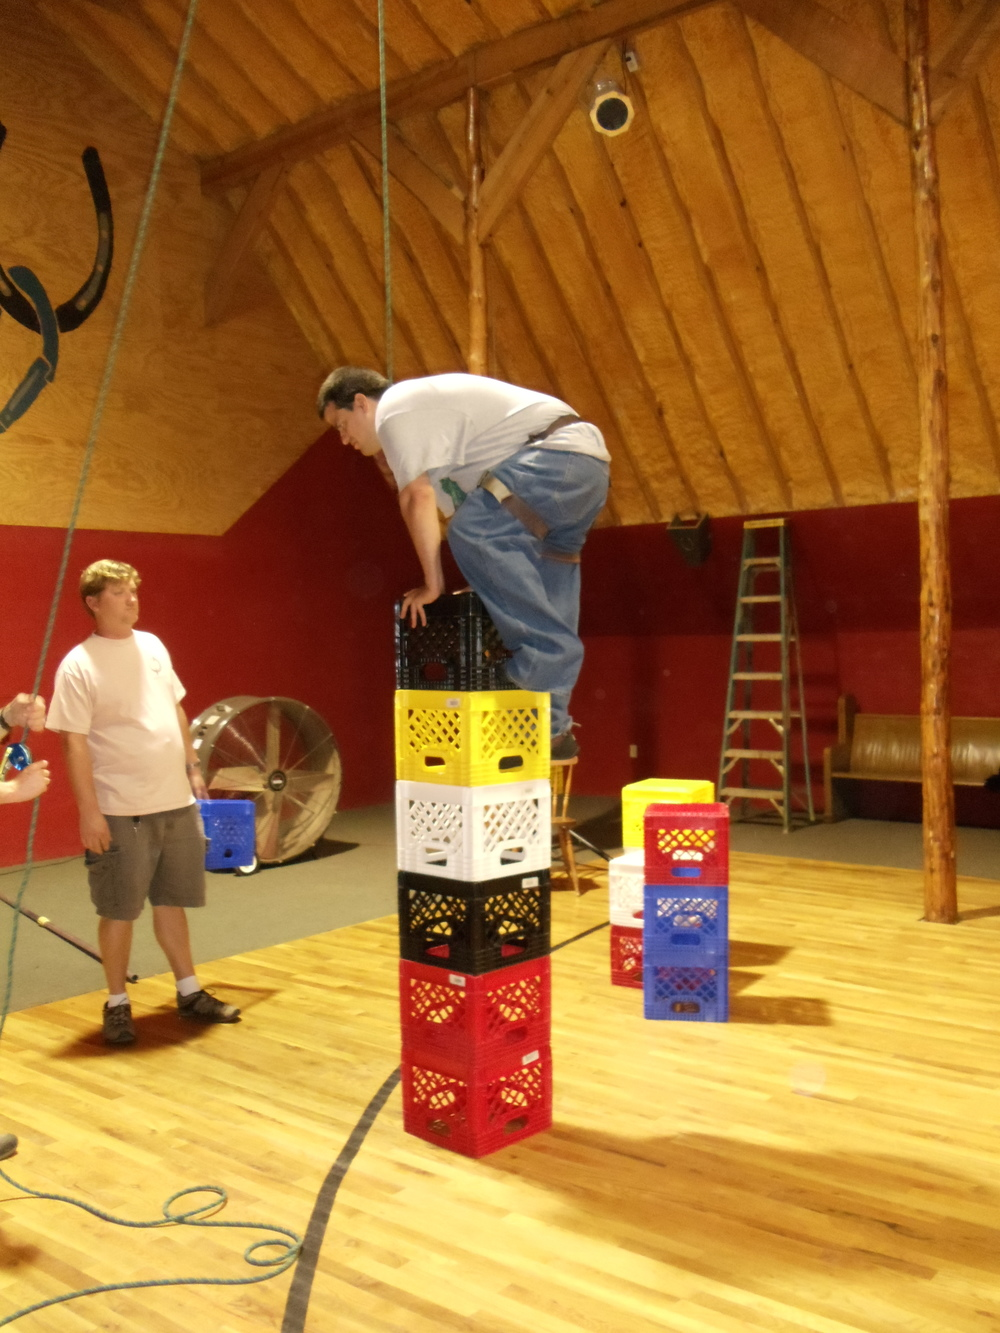 How high can Jack stack the milk crates in the HCR barn?